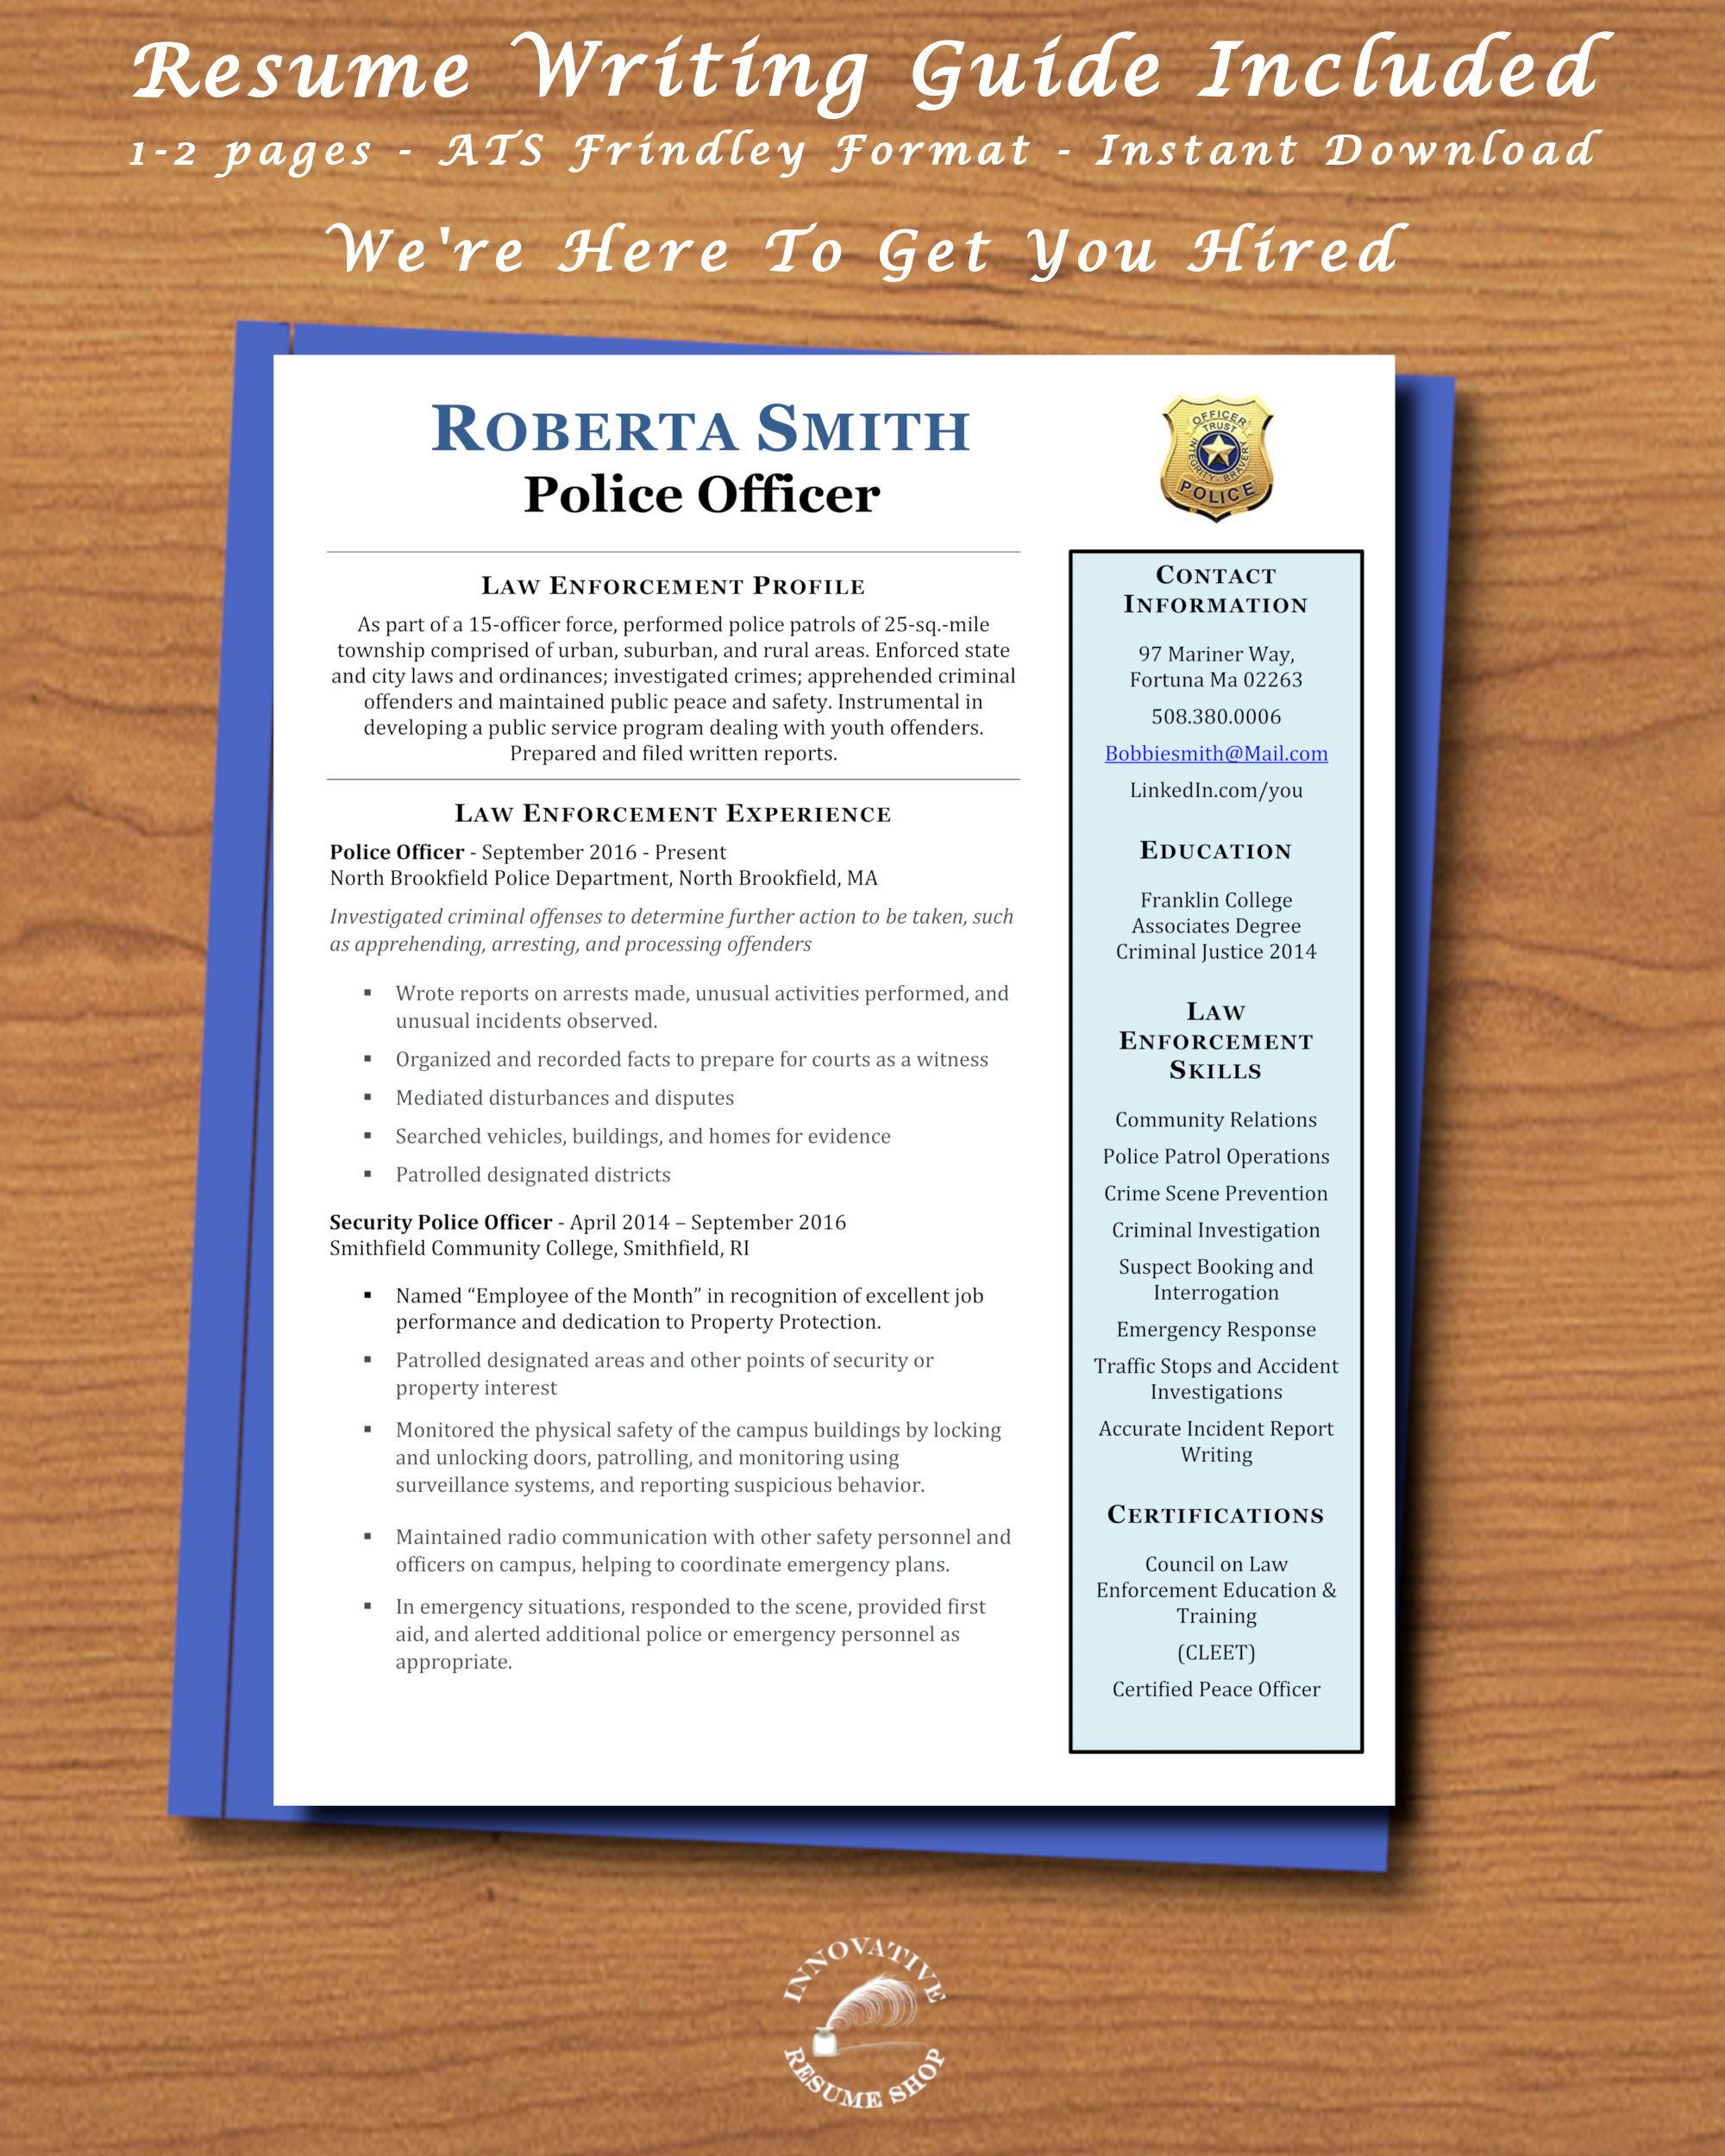 83632903bb75694a3db5a455338ad135 - Application Letter For Cadet Officer Sample